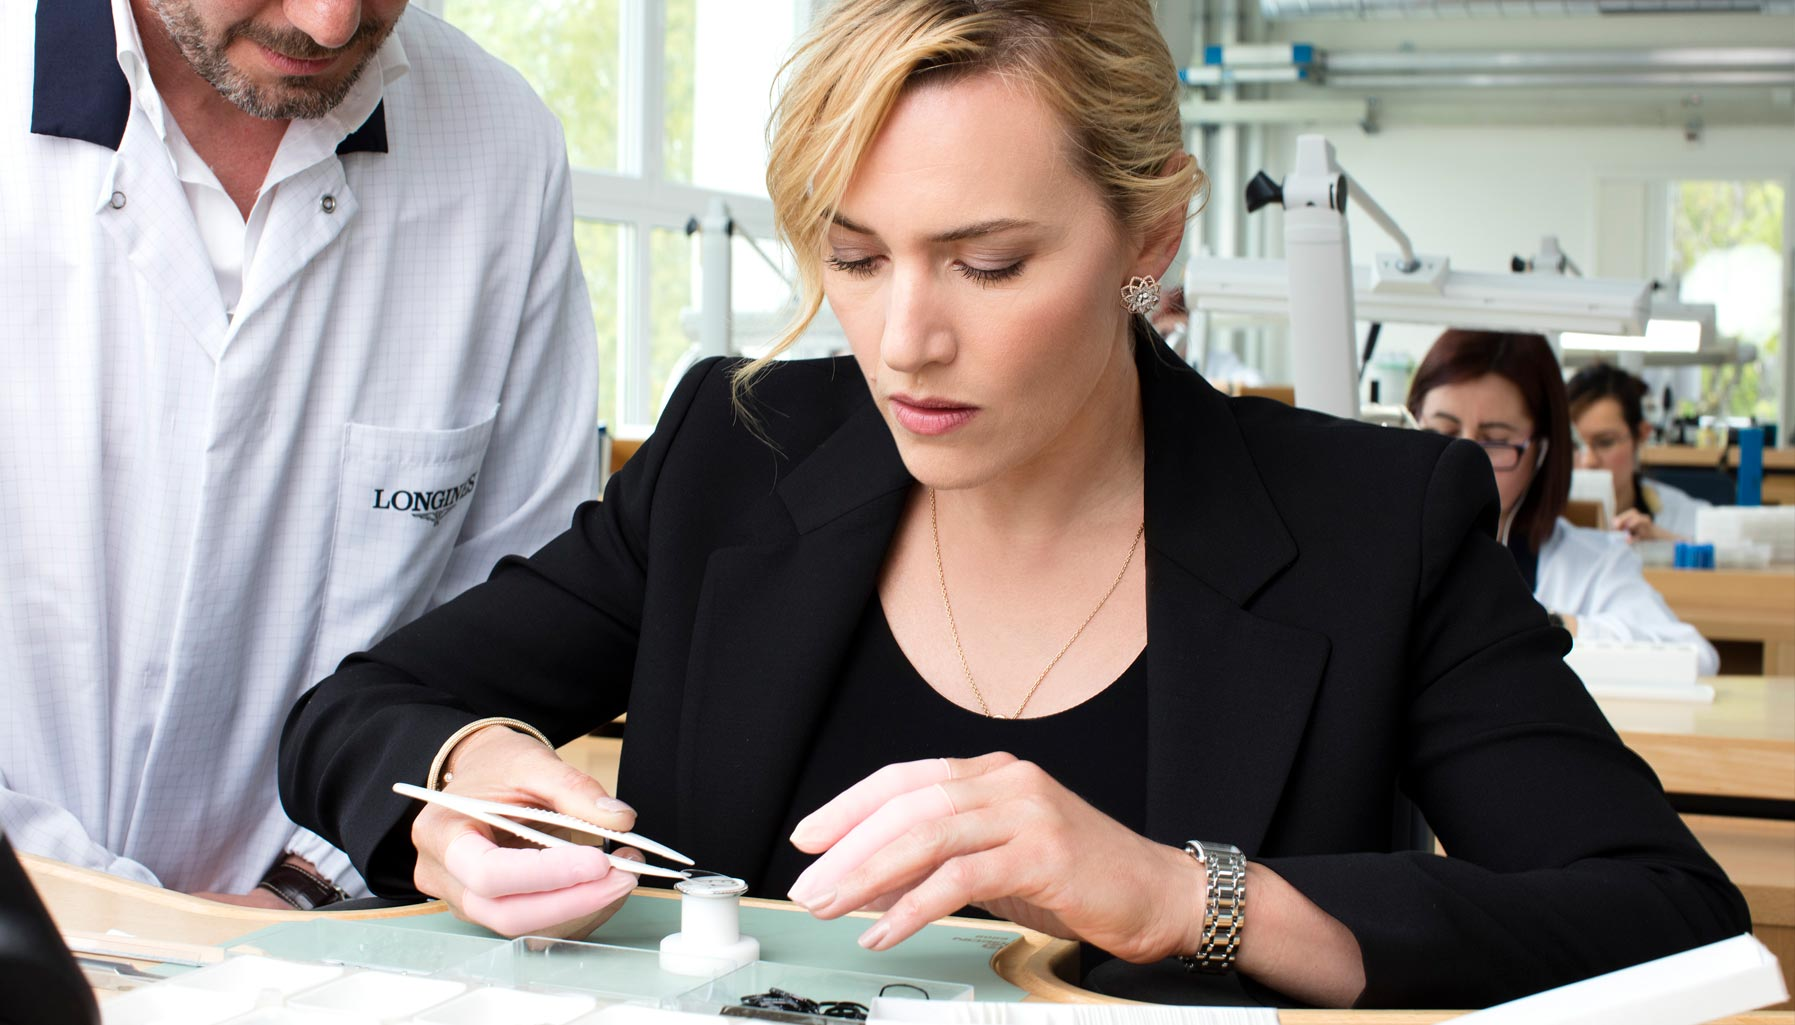 Kate Winslet at the Longines headquarters